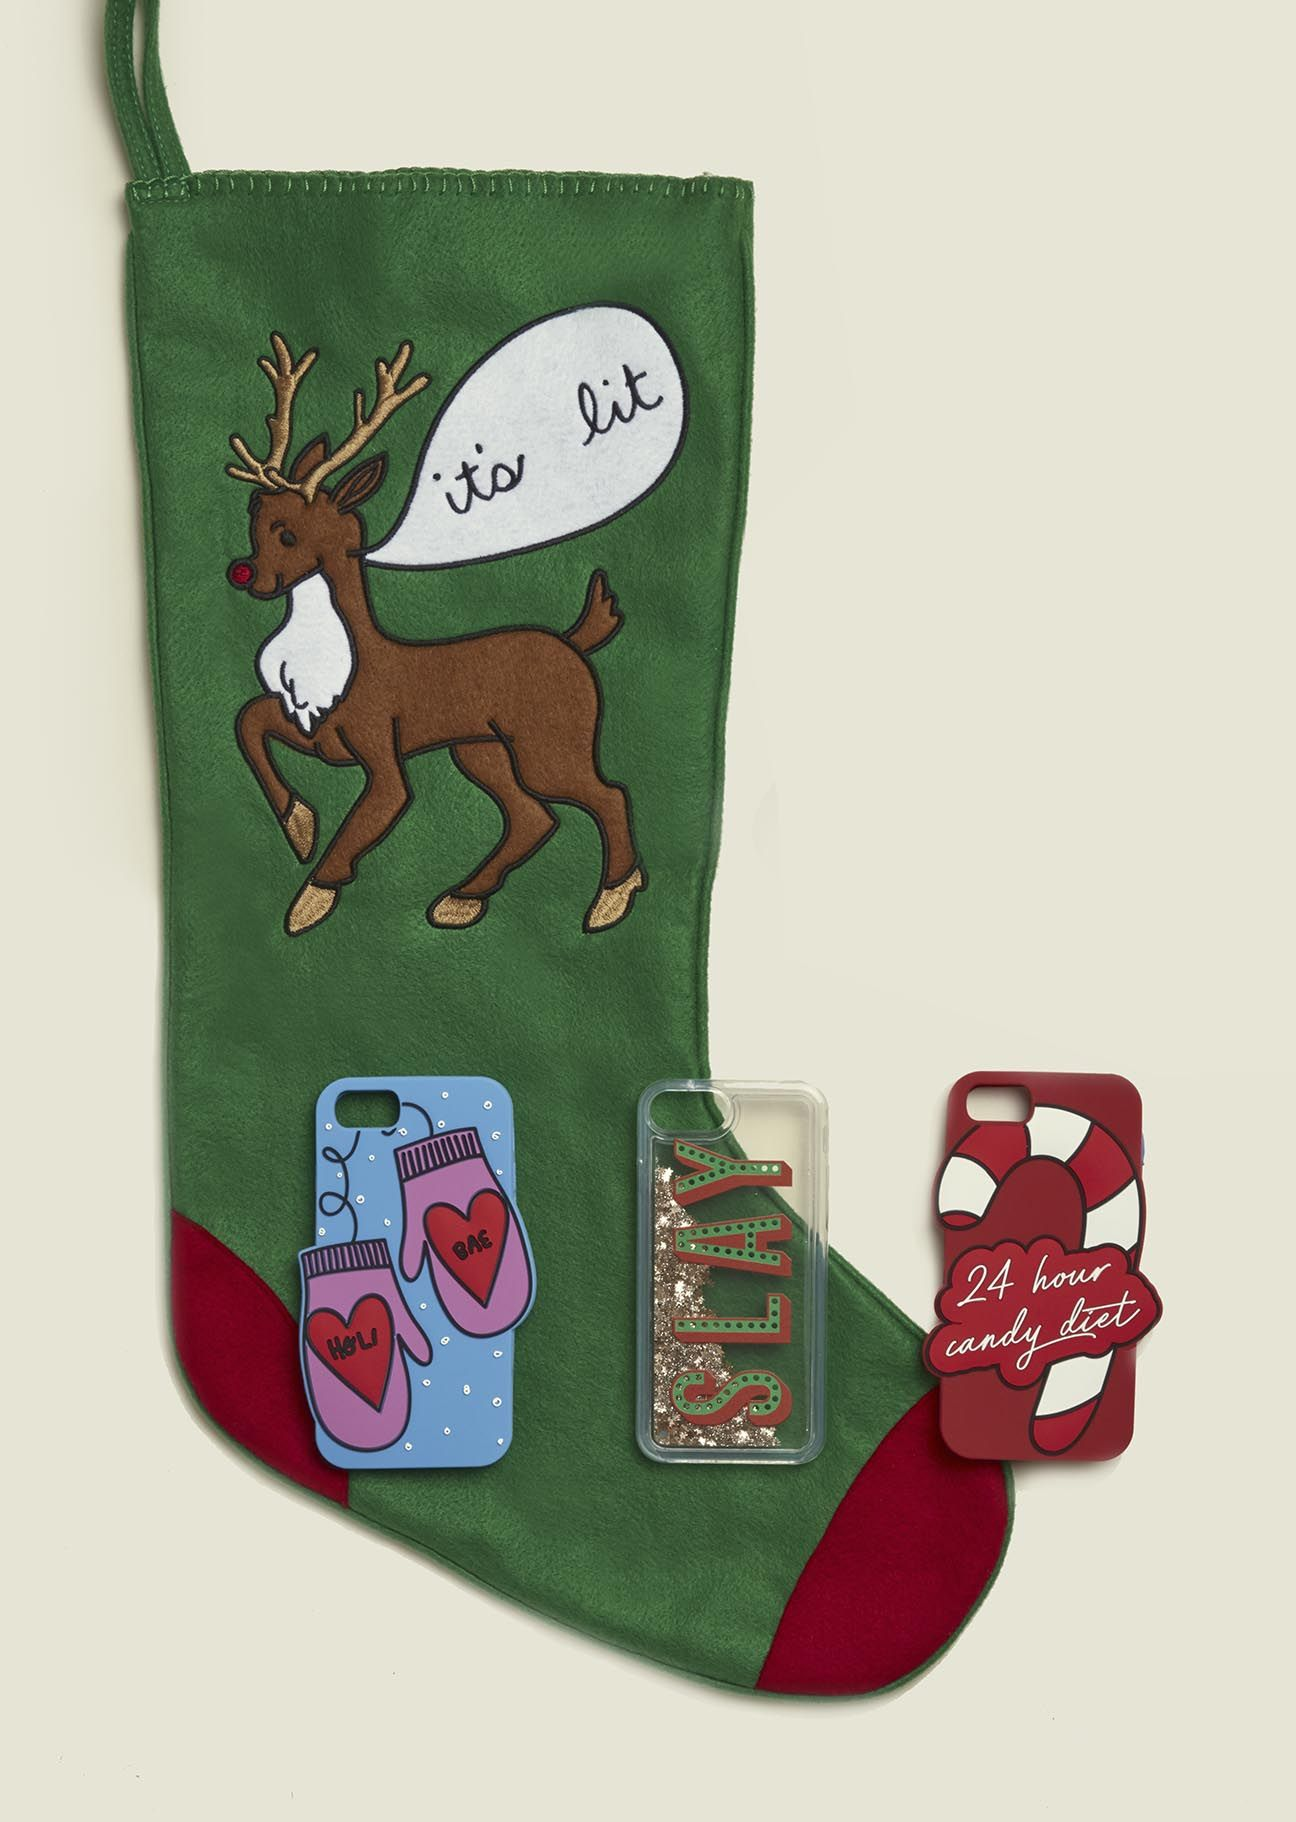 Phone cases with Christmas stocking